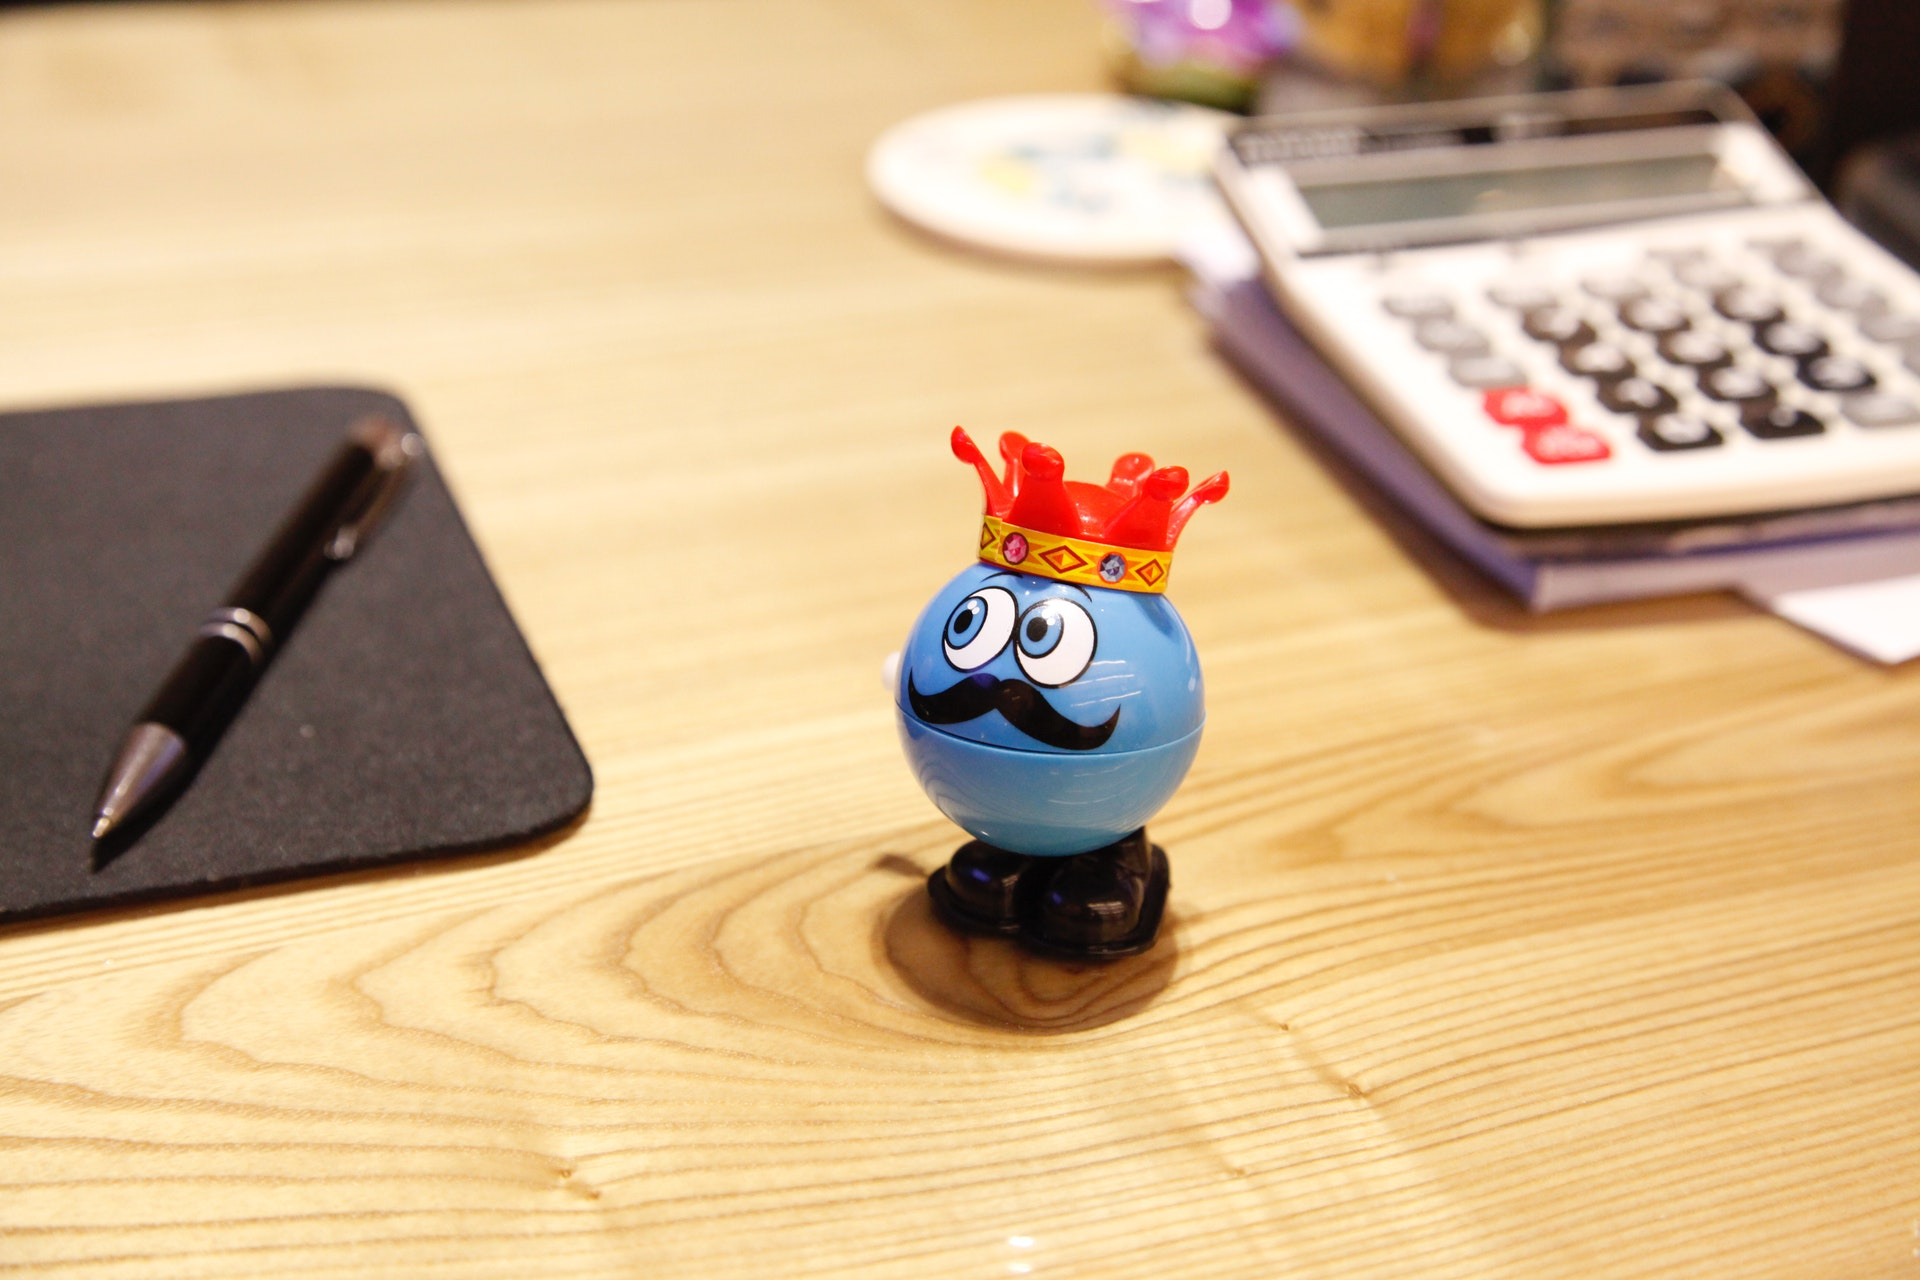 blue-round-plastic-toy-on-a-desk-234171.jpg